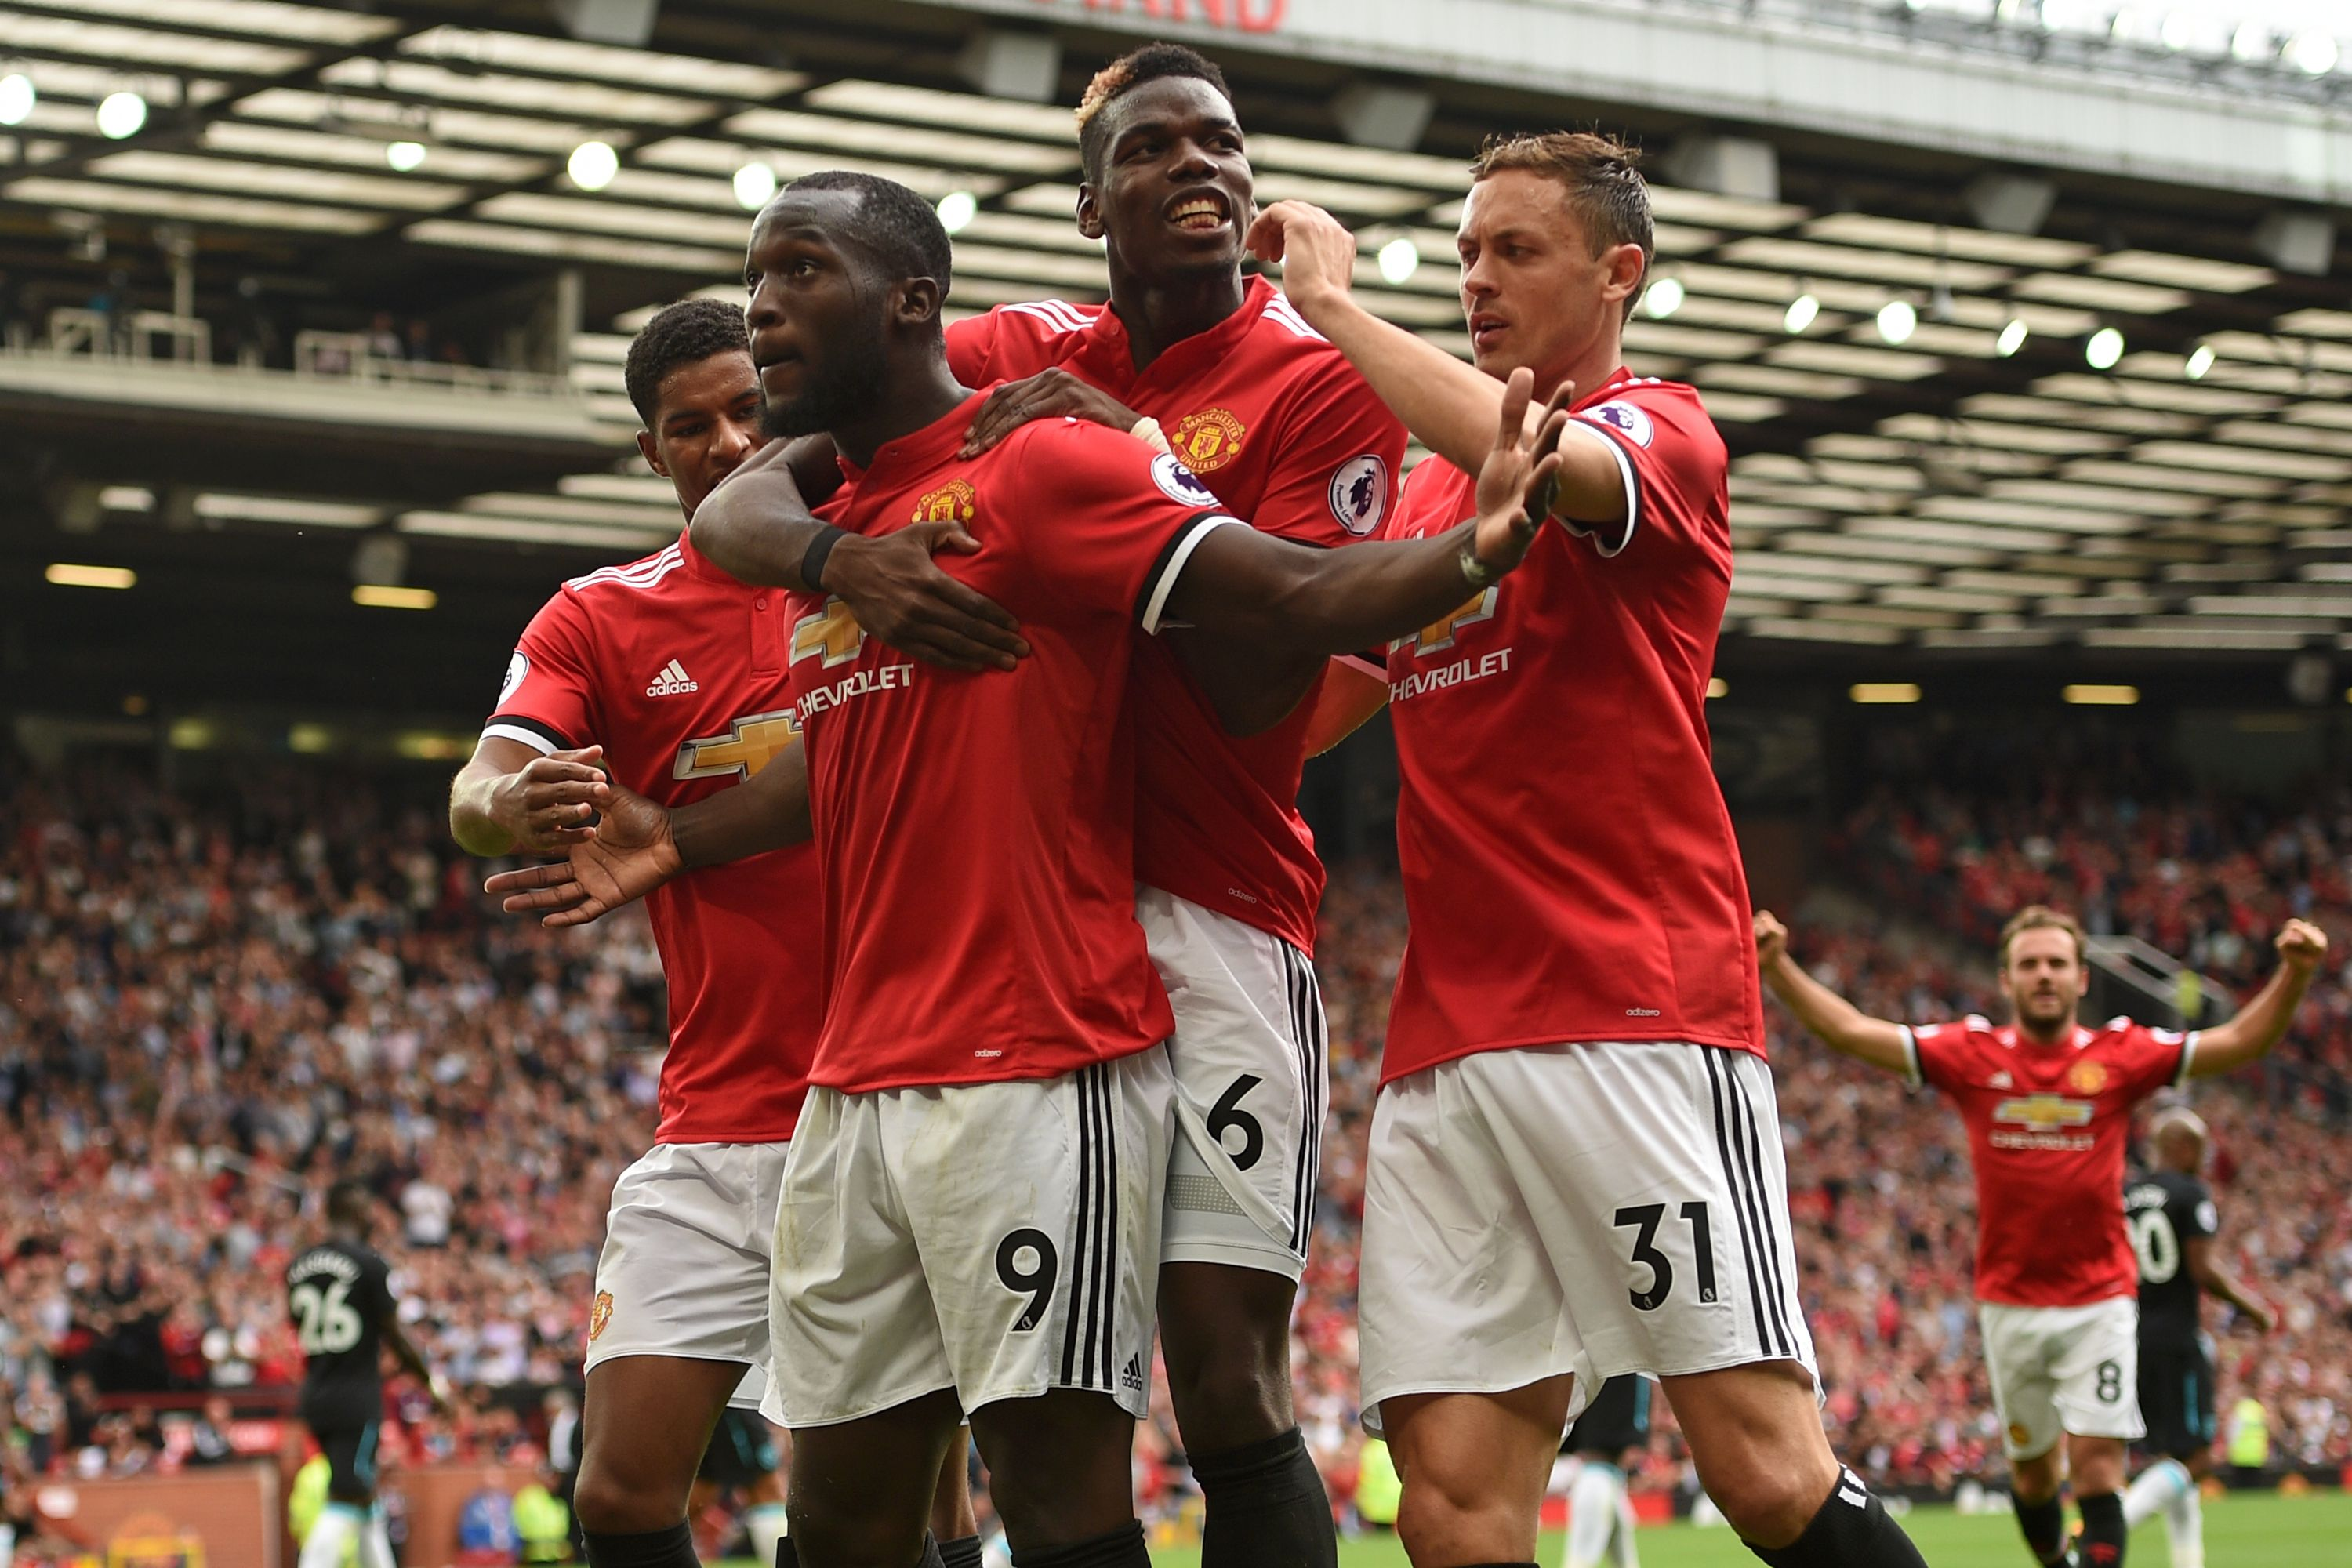 Manchester United reminiscent of Arsenal's Invincibles, says Thierry Henry